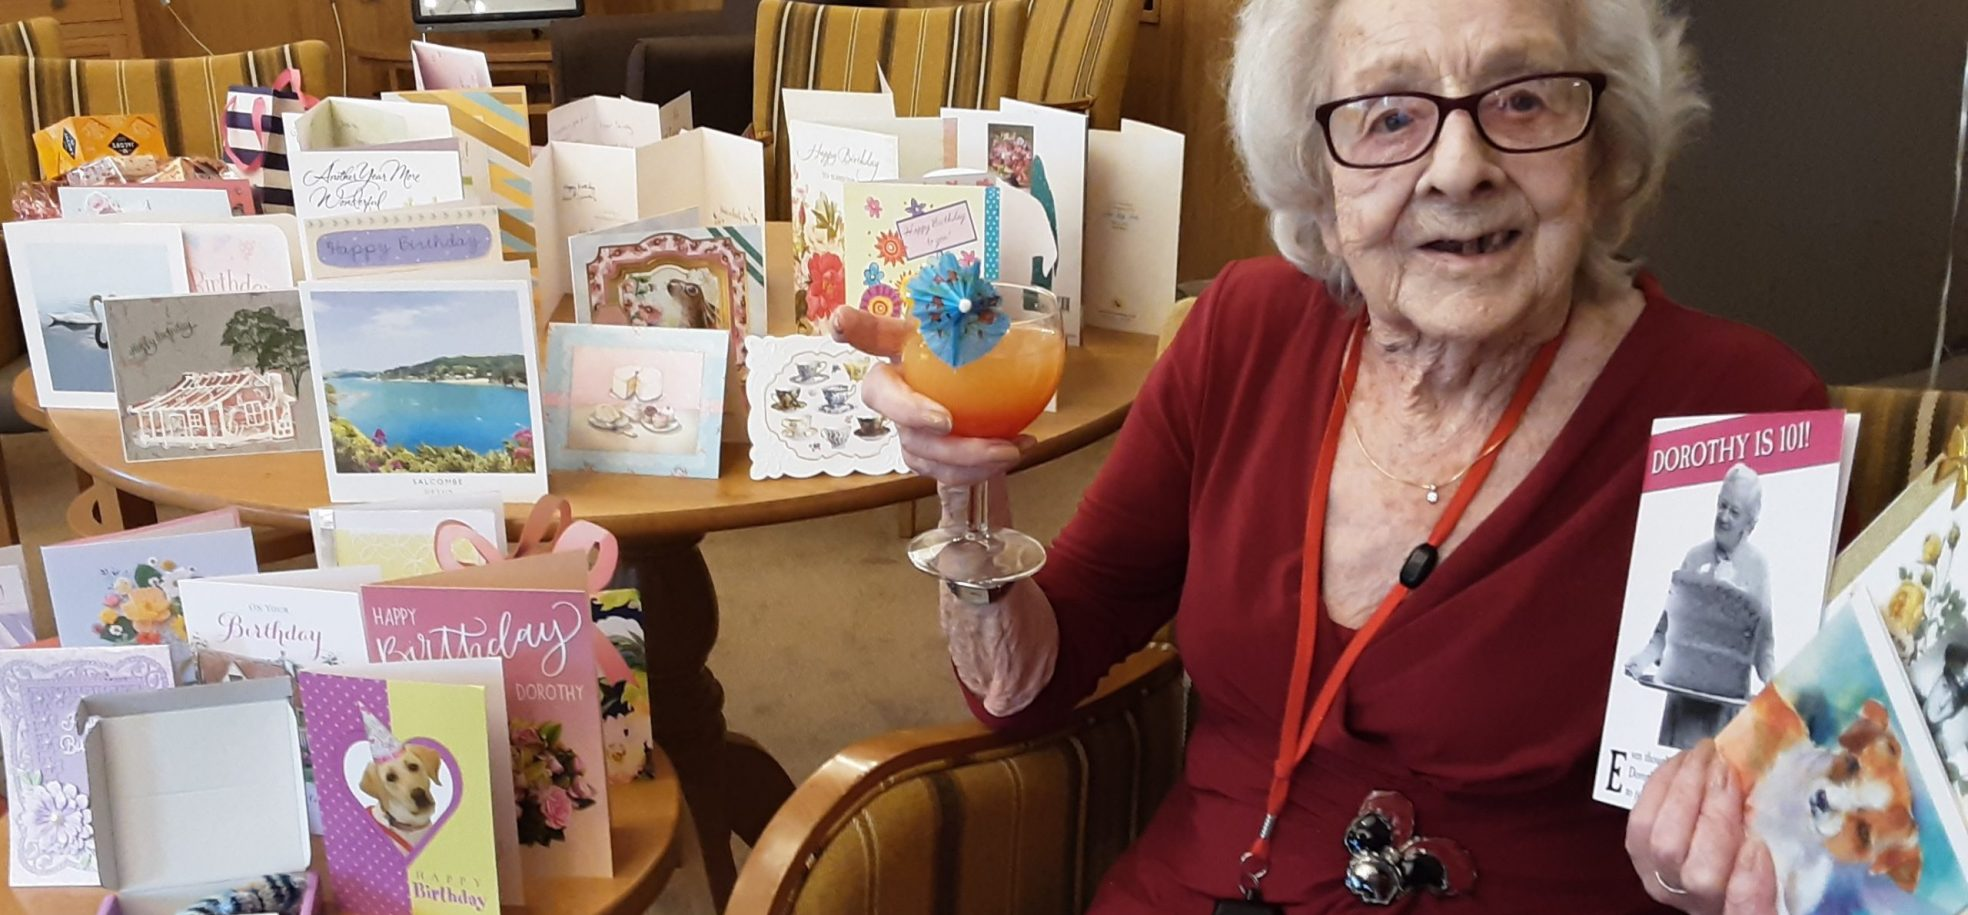 Cornwallis Court resident, Dorothy Crane, celebrates her 101st birthday at the Home with 101 birthday cards from family and friends